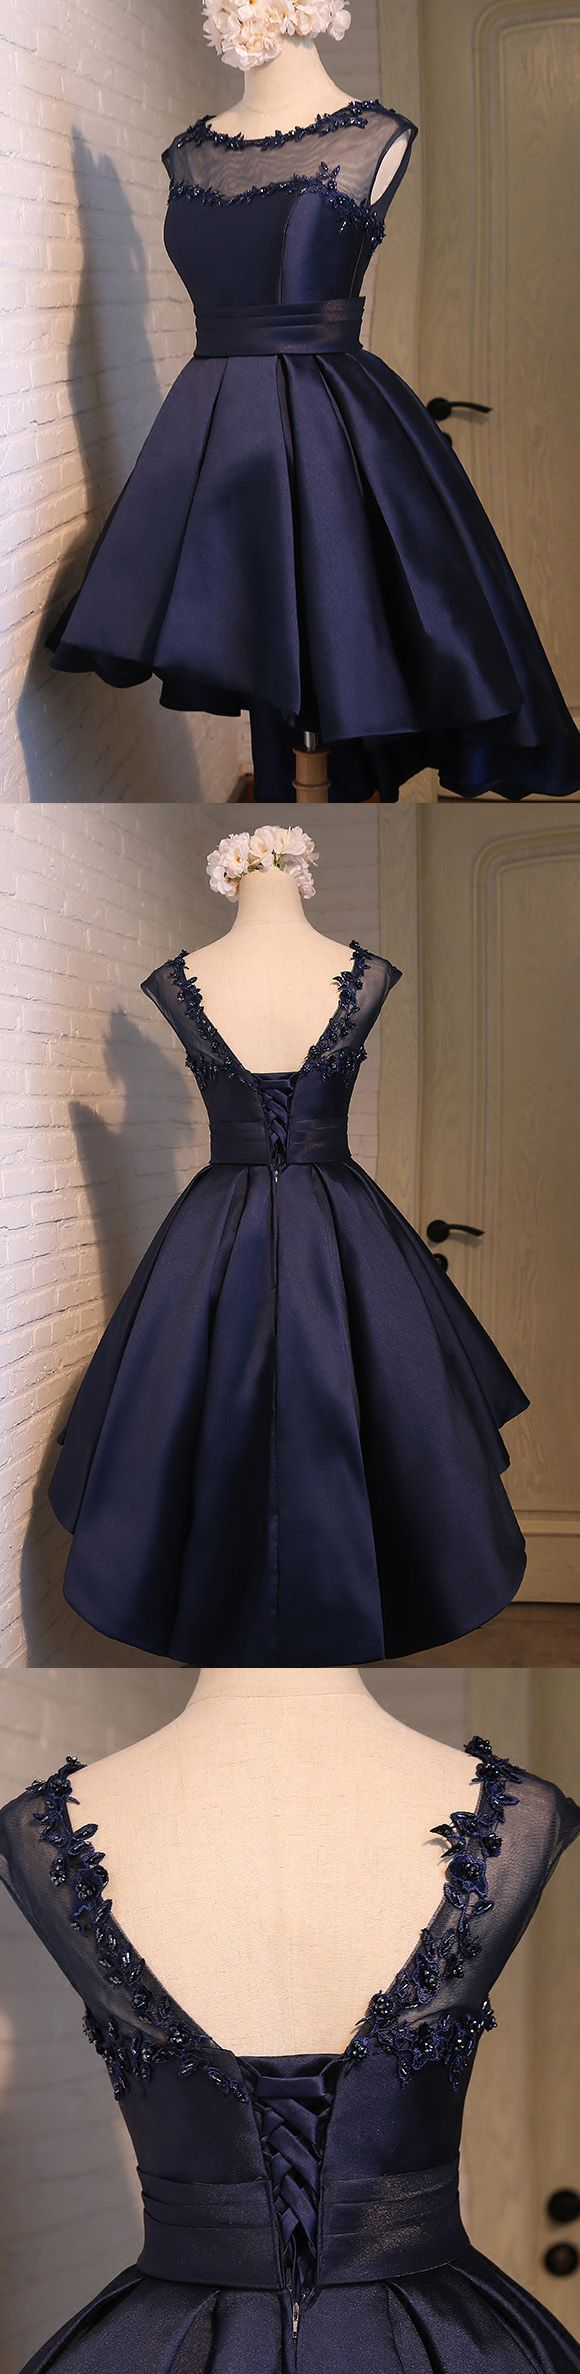 If You like Our Pic, Please Follow Me and Repin it. Subscribe to our mail:service@comlydress.hotopmail.com, We will send you preferential information on a regular basis. Asymmetrical Homecoming Dresses, Navy Asymmetrical Prom Dresses, Asymmetrical Short Prom Dresses, 2017 Homecoming Dress Asymmetrical Lace-up Short Prom Dress Party Dress